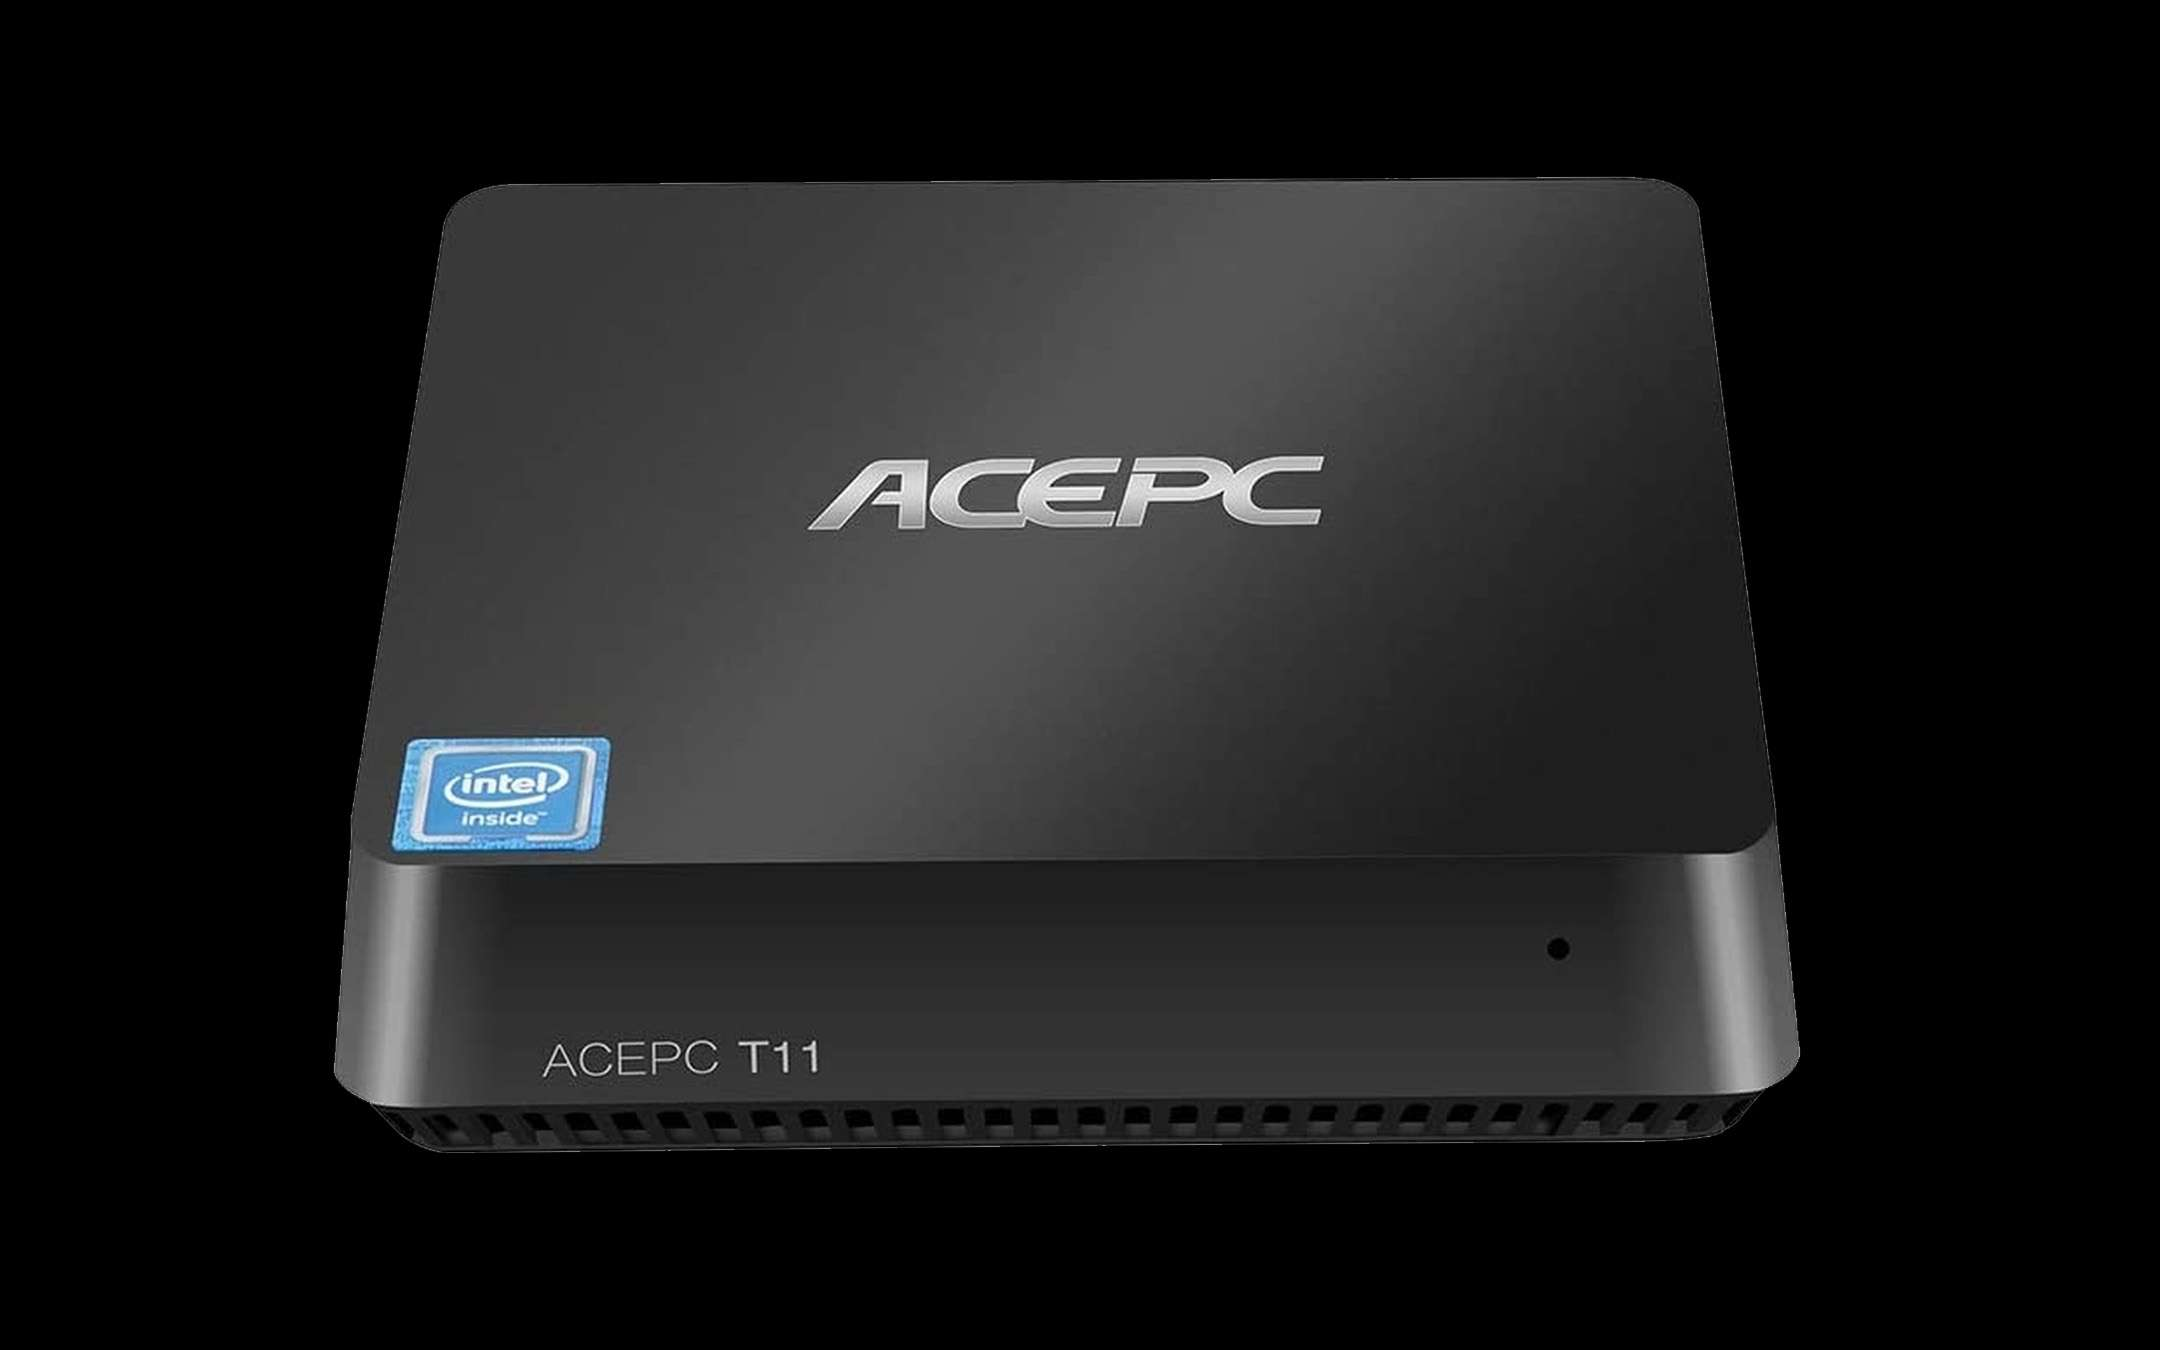 ACEPC T11, mini PC on a flash offer at 119 euros